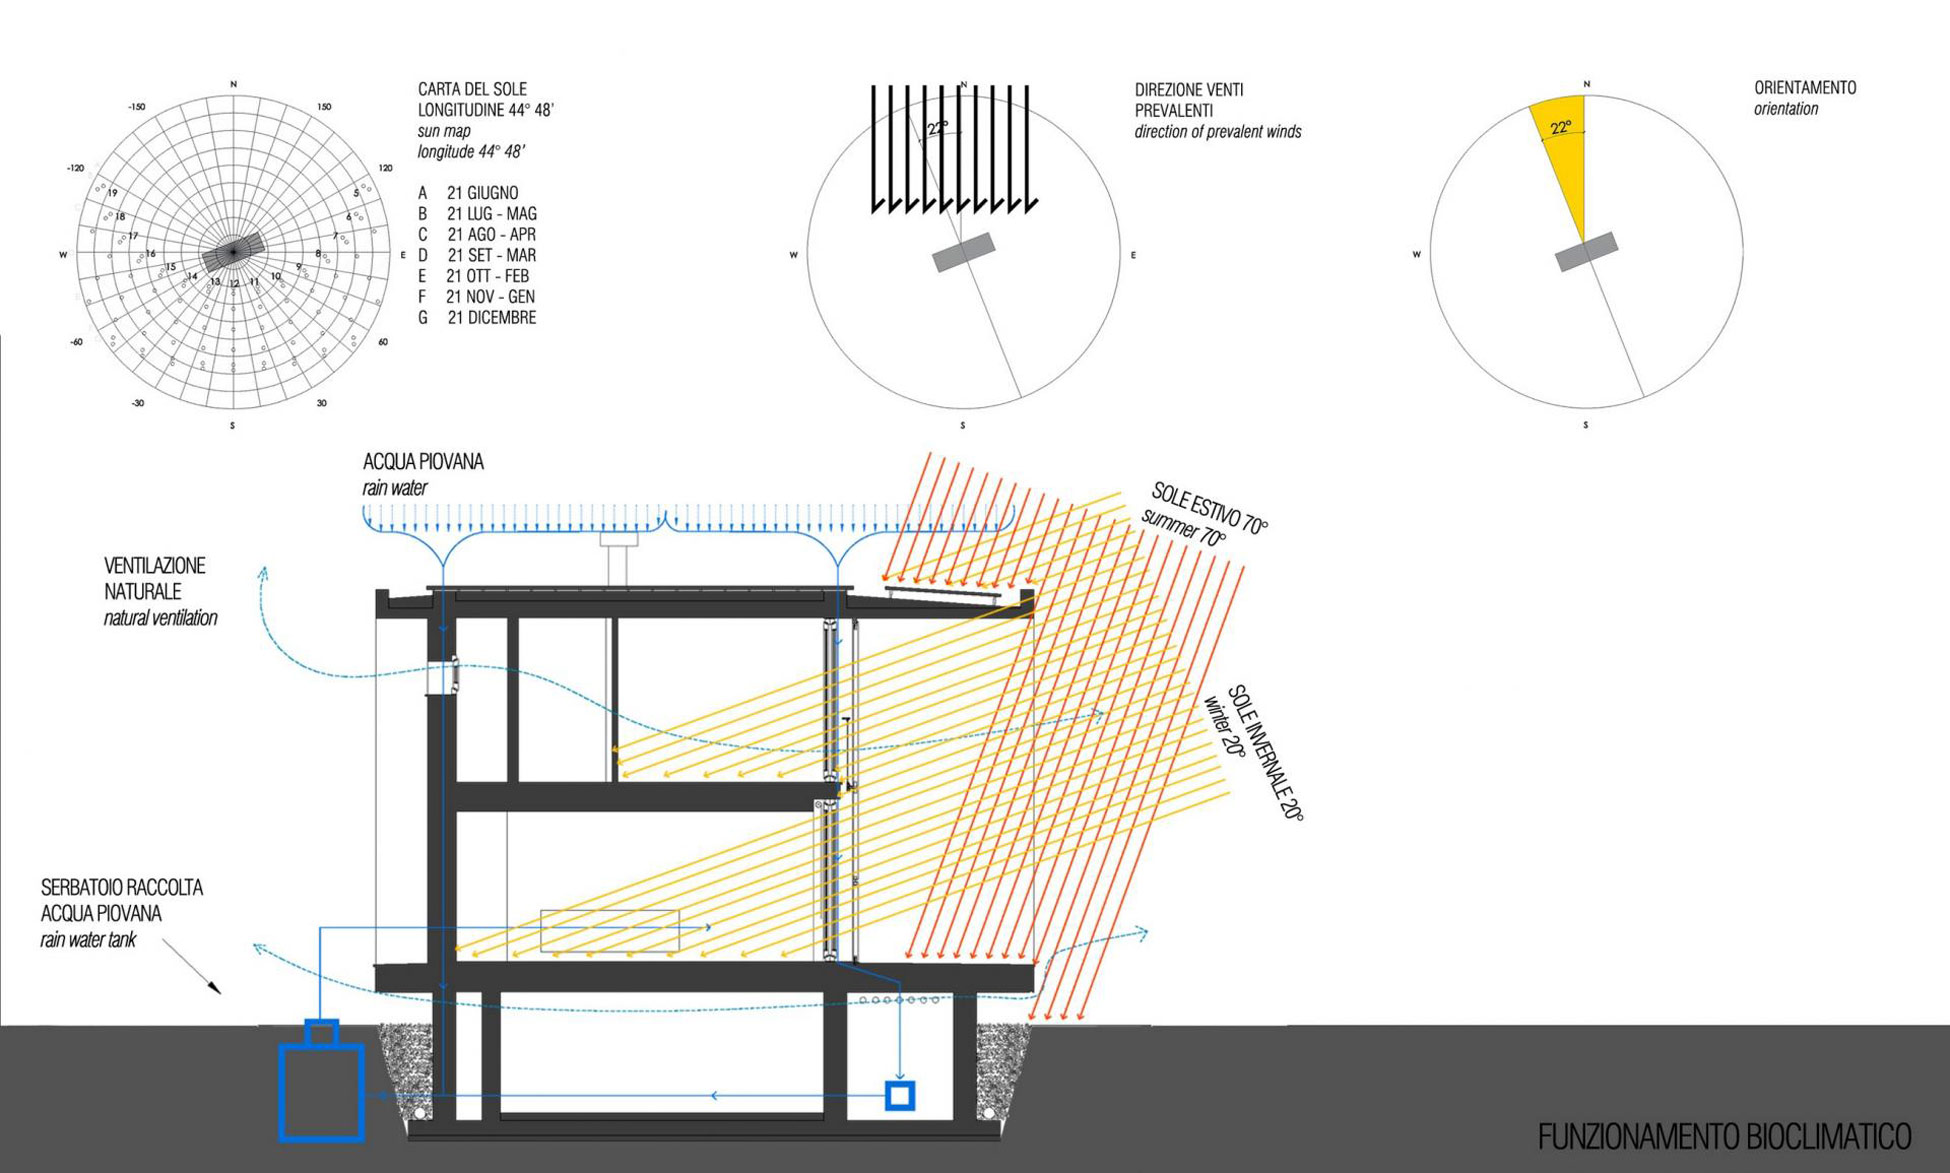 Eco Systems Diagram, Modern Eco-Friendly Home in Castelnovo di Sotto, Italy